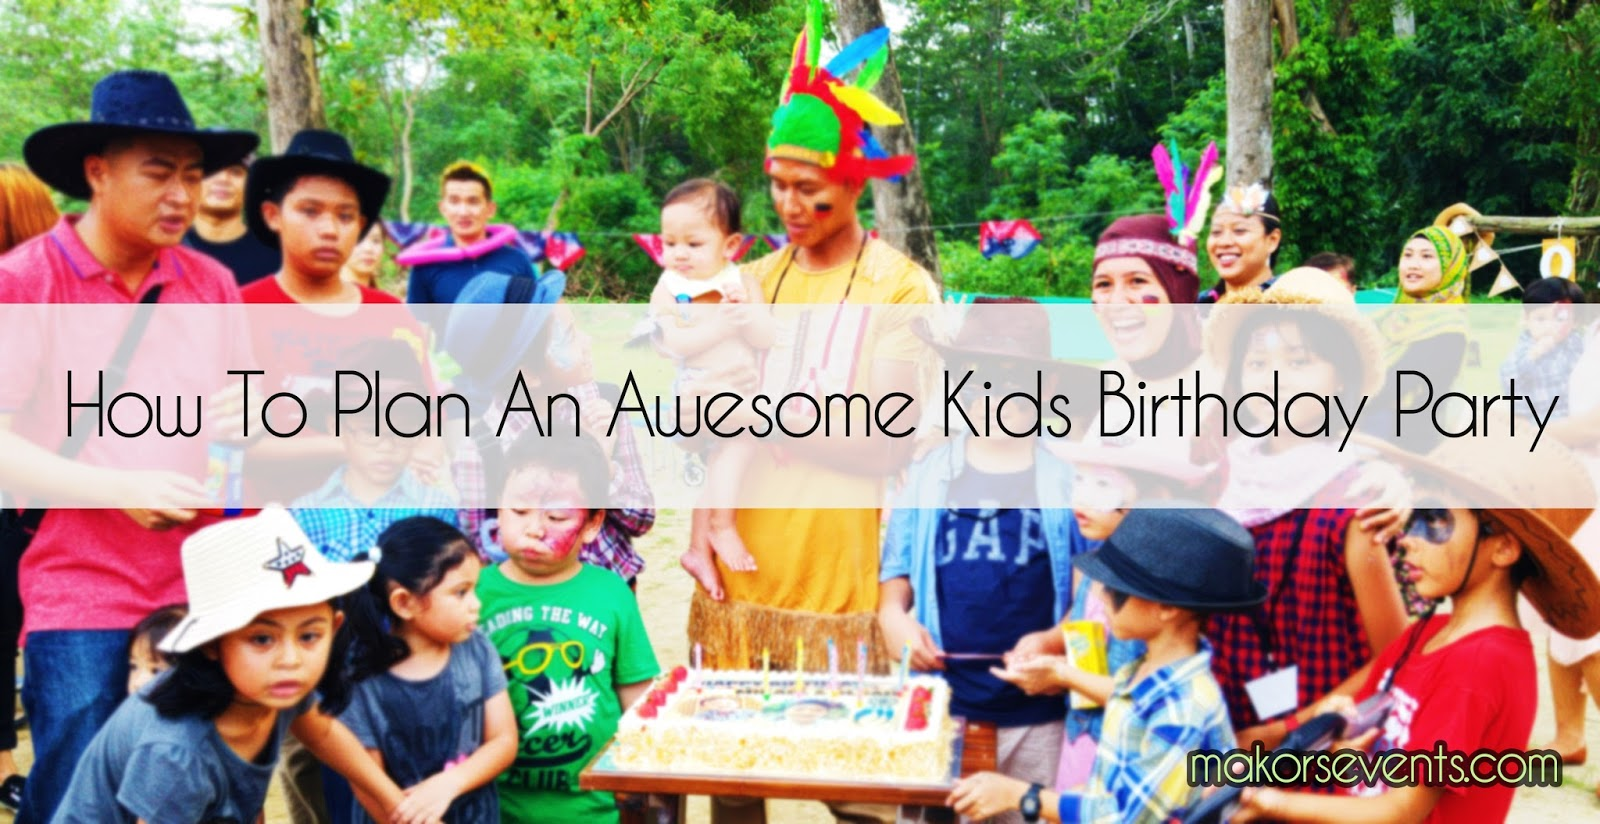 Busy parents the blueprint to planning kids birthday party planning a birthday party for your kid is the best way to lift up their spirit and boost their self esteem on their special day making them feel like malvernweather Images